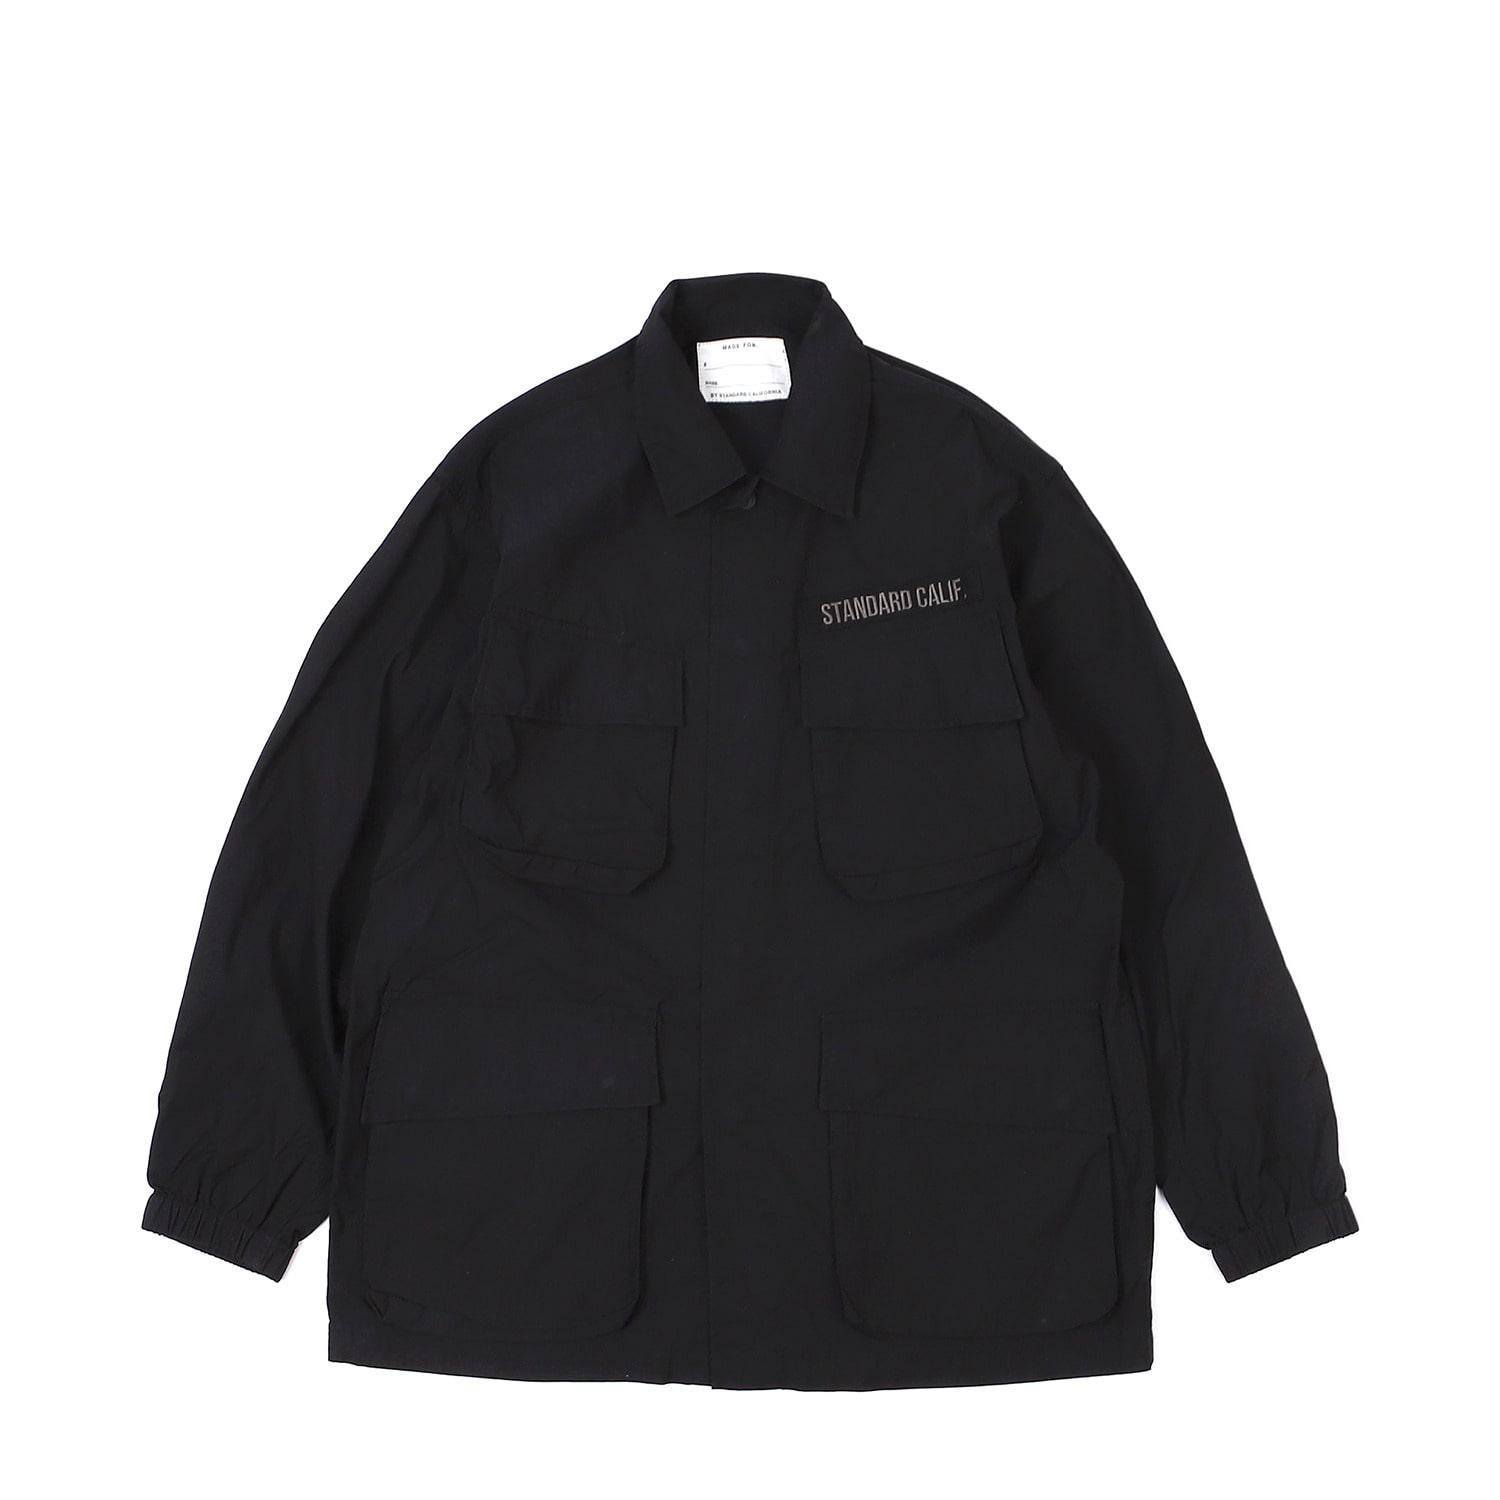 SD Coolmax Stretch Ripstop Jungle Fatigue Jacket(Black)